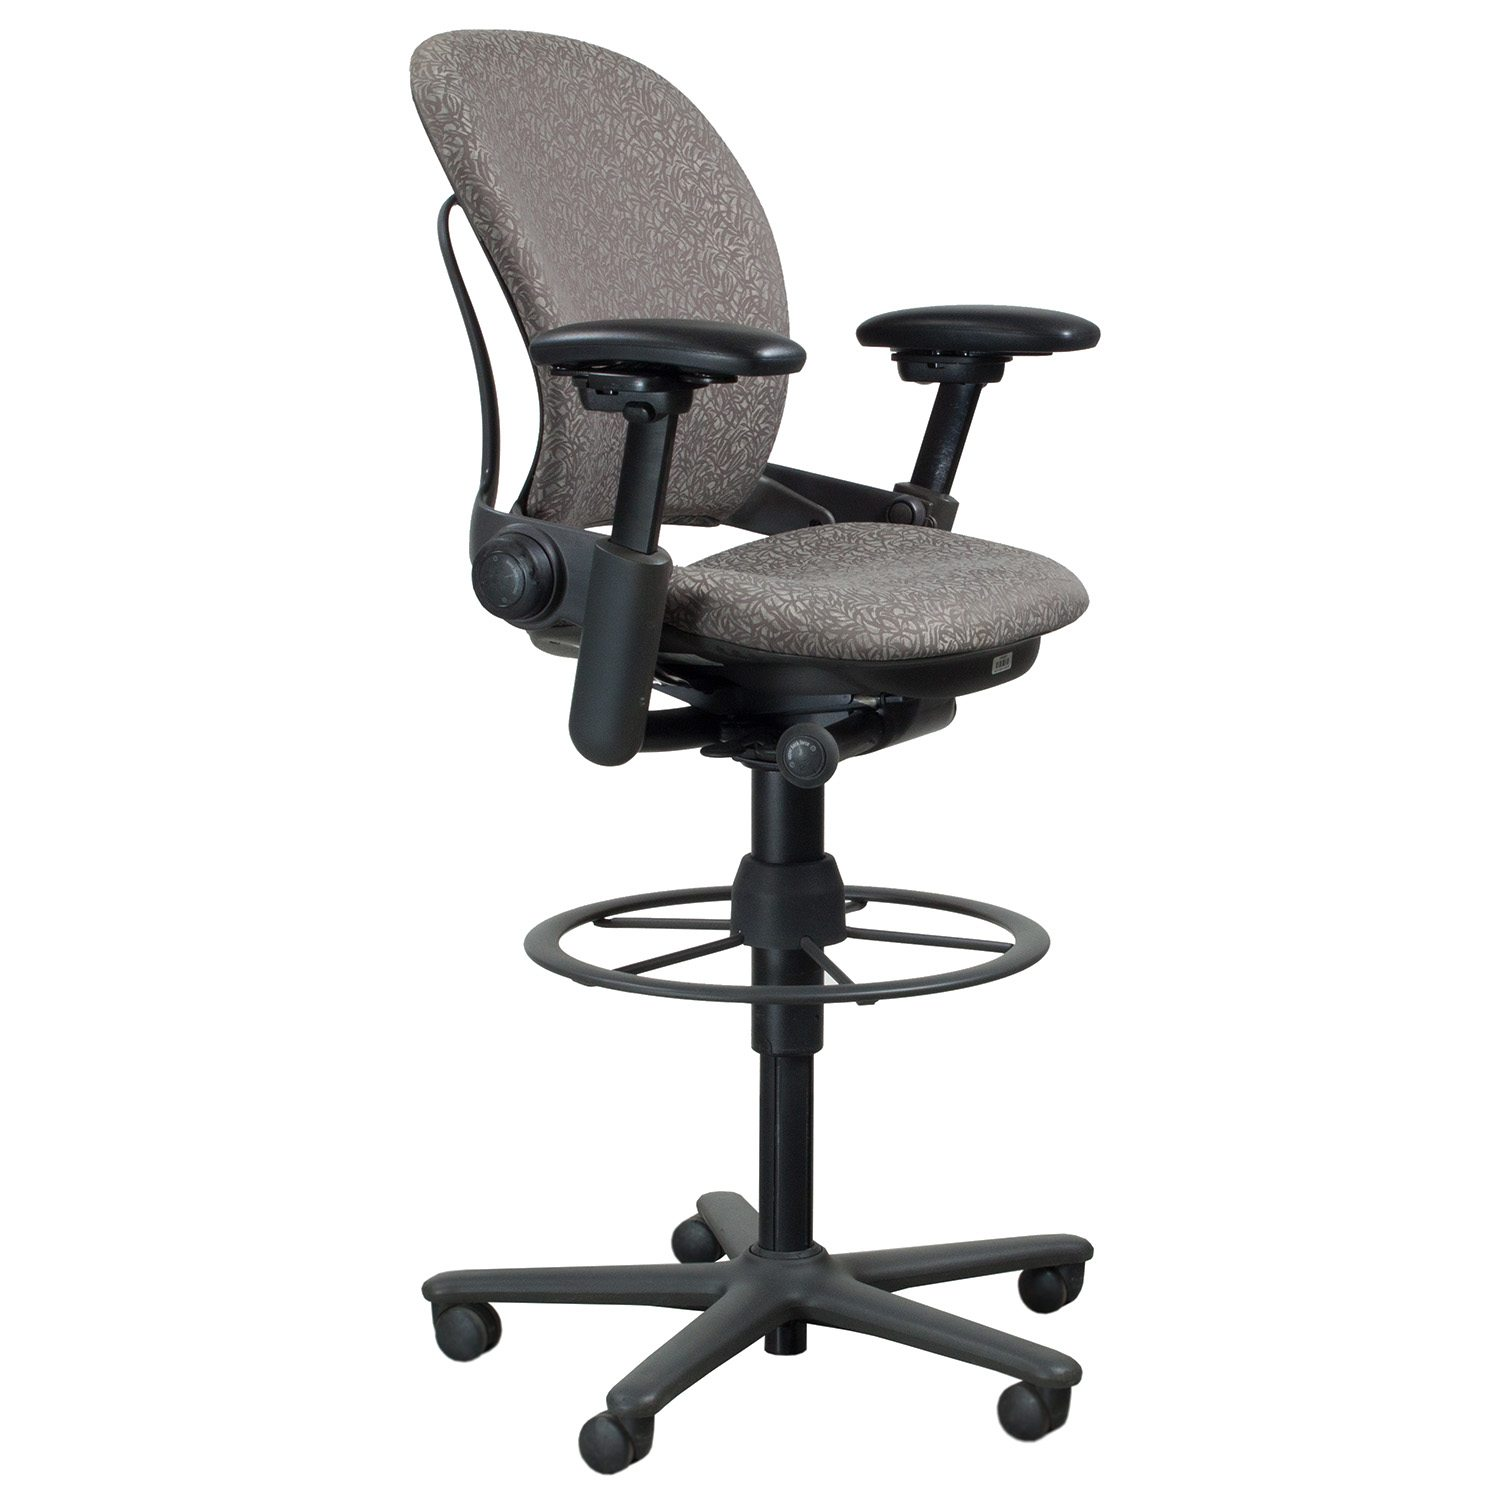 steelcase jersey chair review timothy oulton mimi dining leap used stool leaf national office